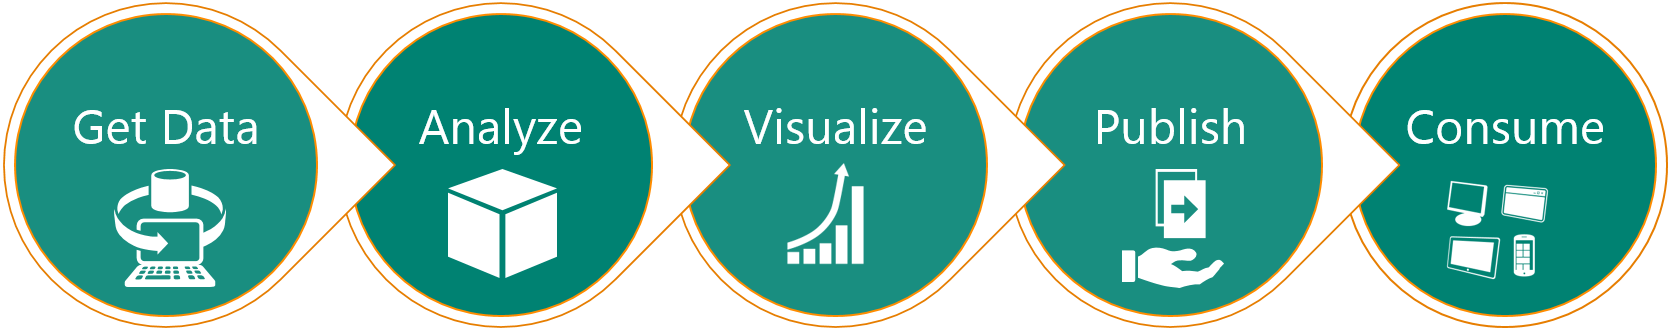 What's new for business analytics in Excel 2016 - Microsoft 365 Blog